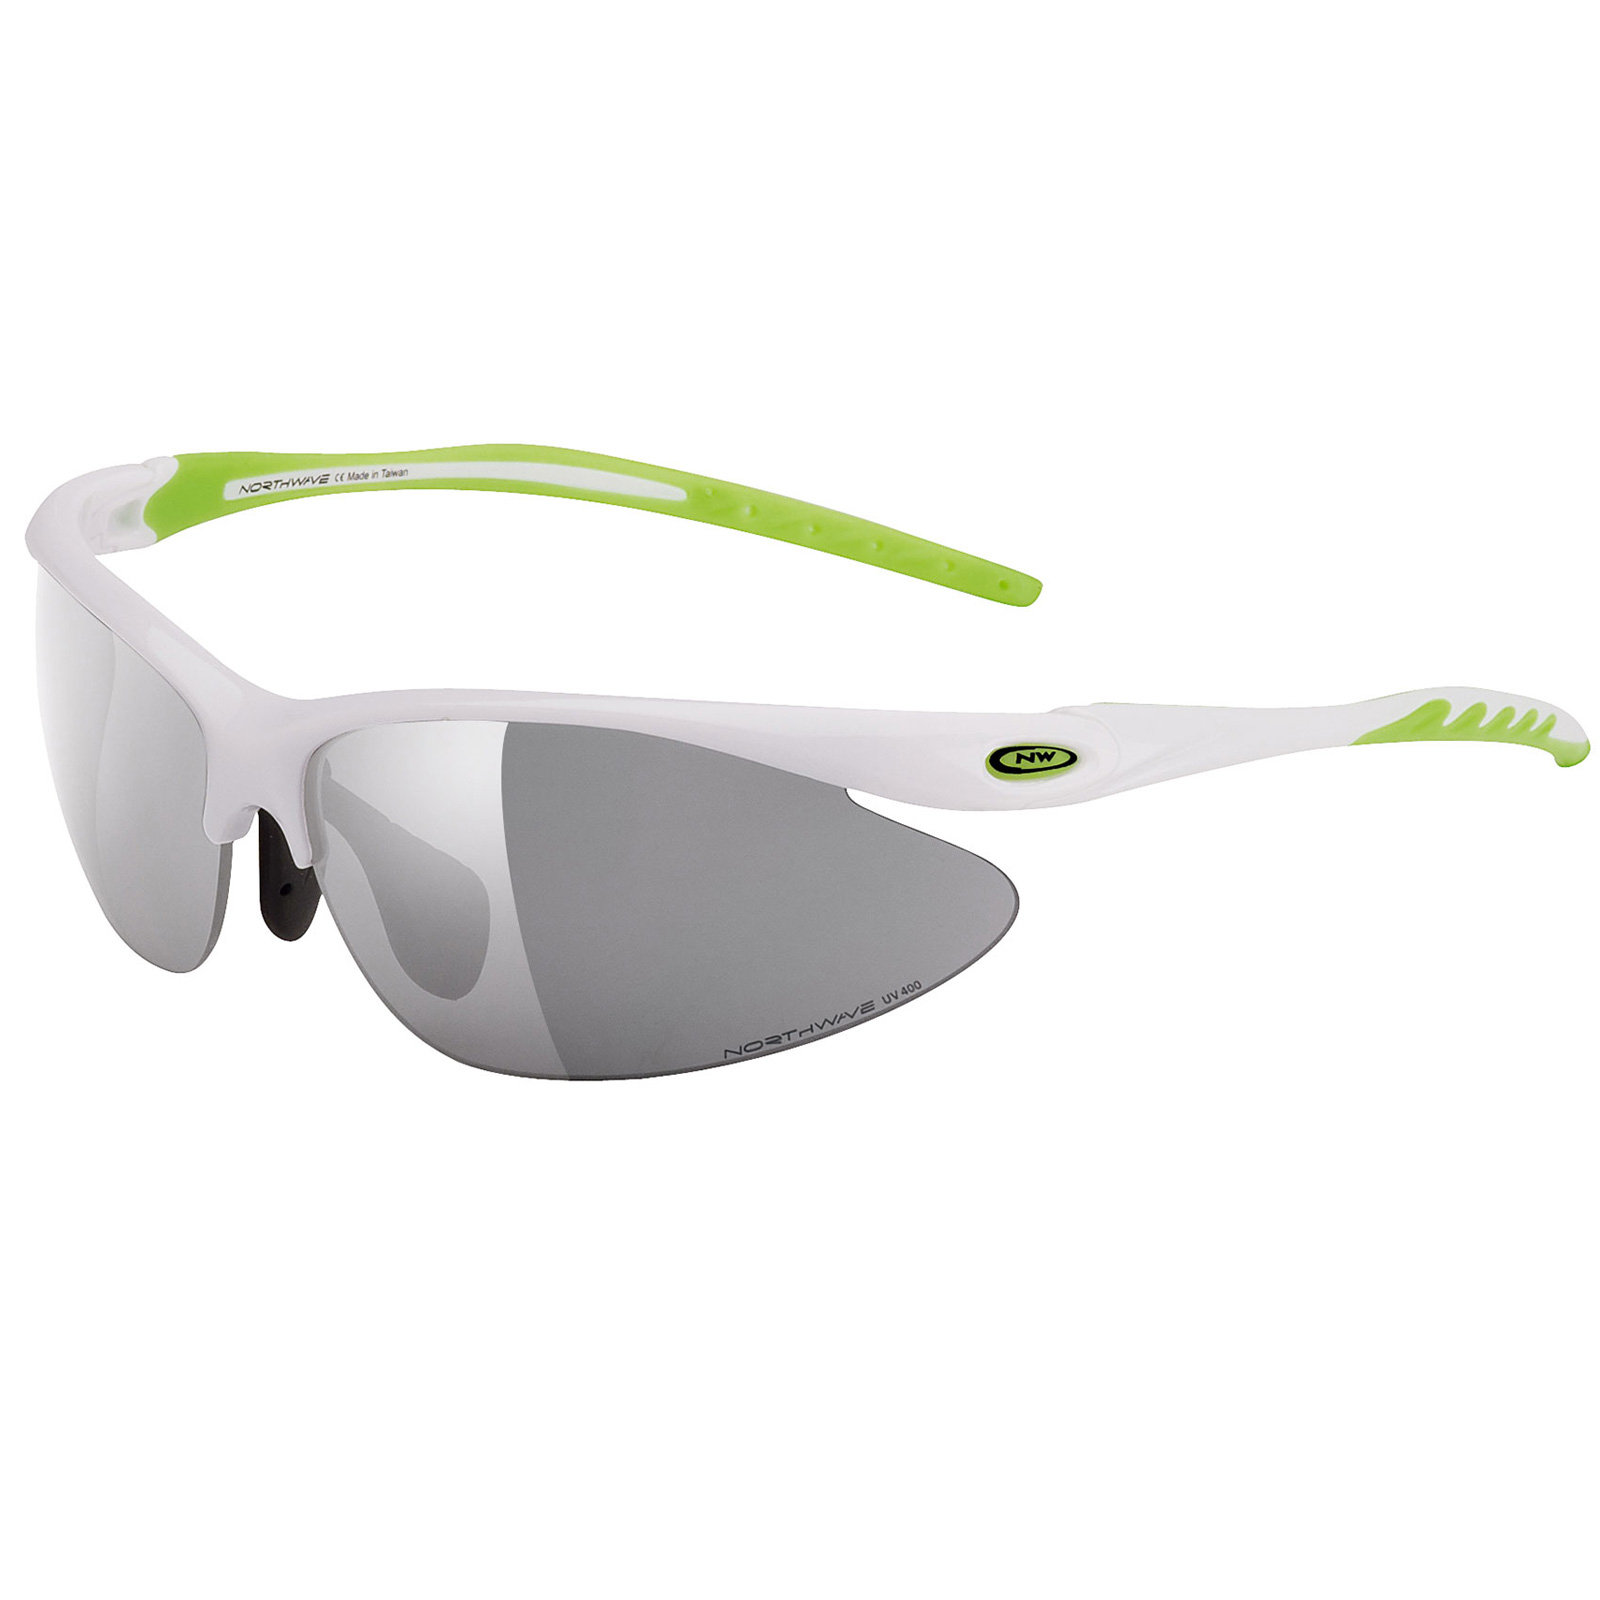 NORTHWAVE-TEAM-TECHNICAL-BIKE-CYCLING-SUNGLASSES-WITH-INTERCHANGEABLE-LENSES